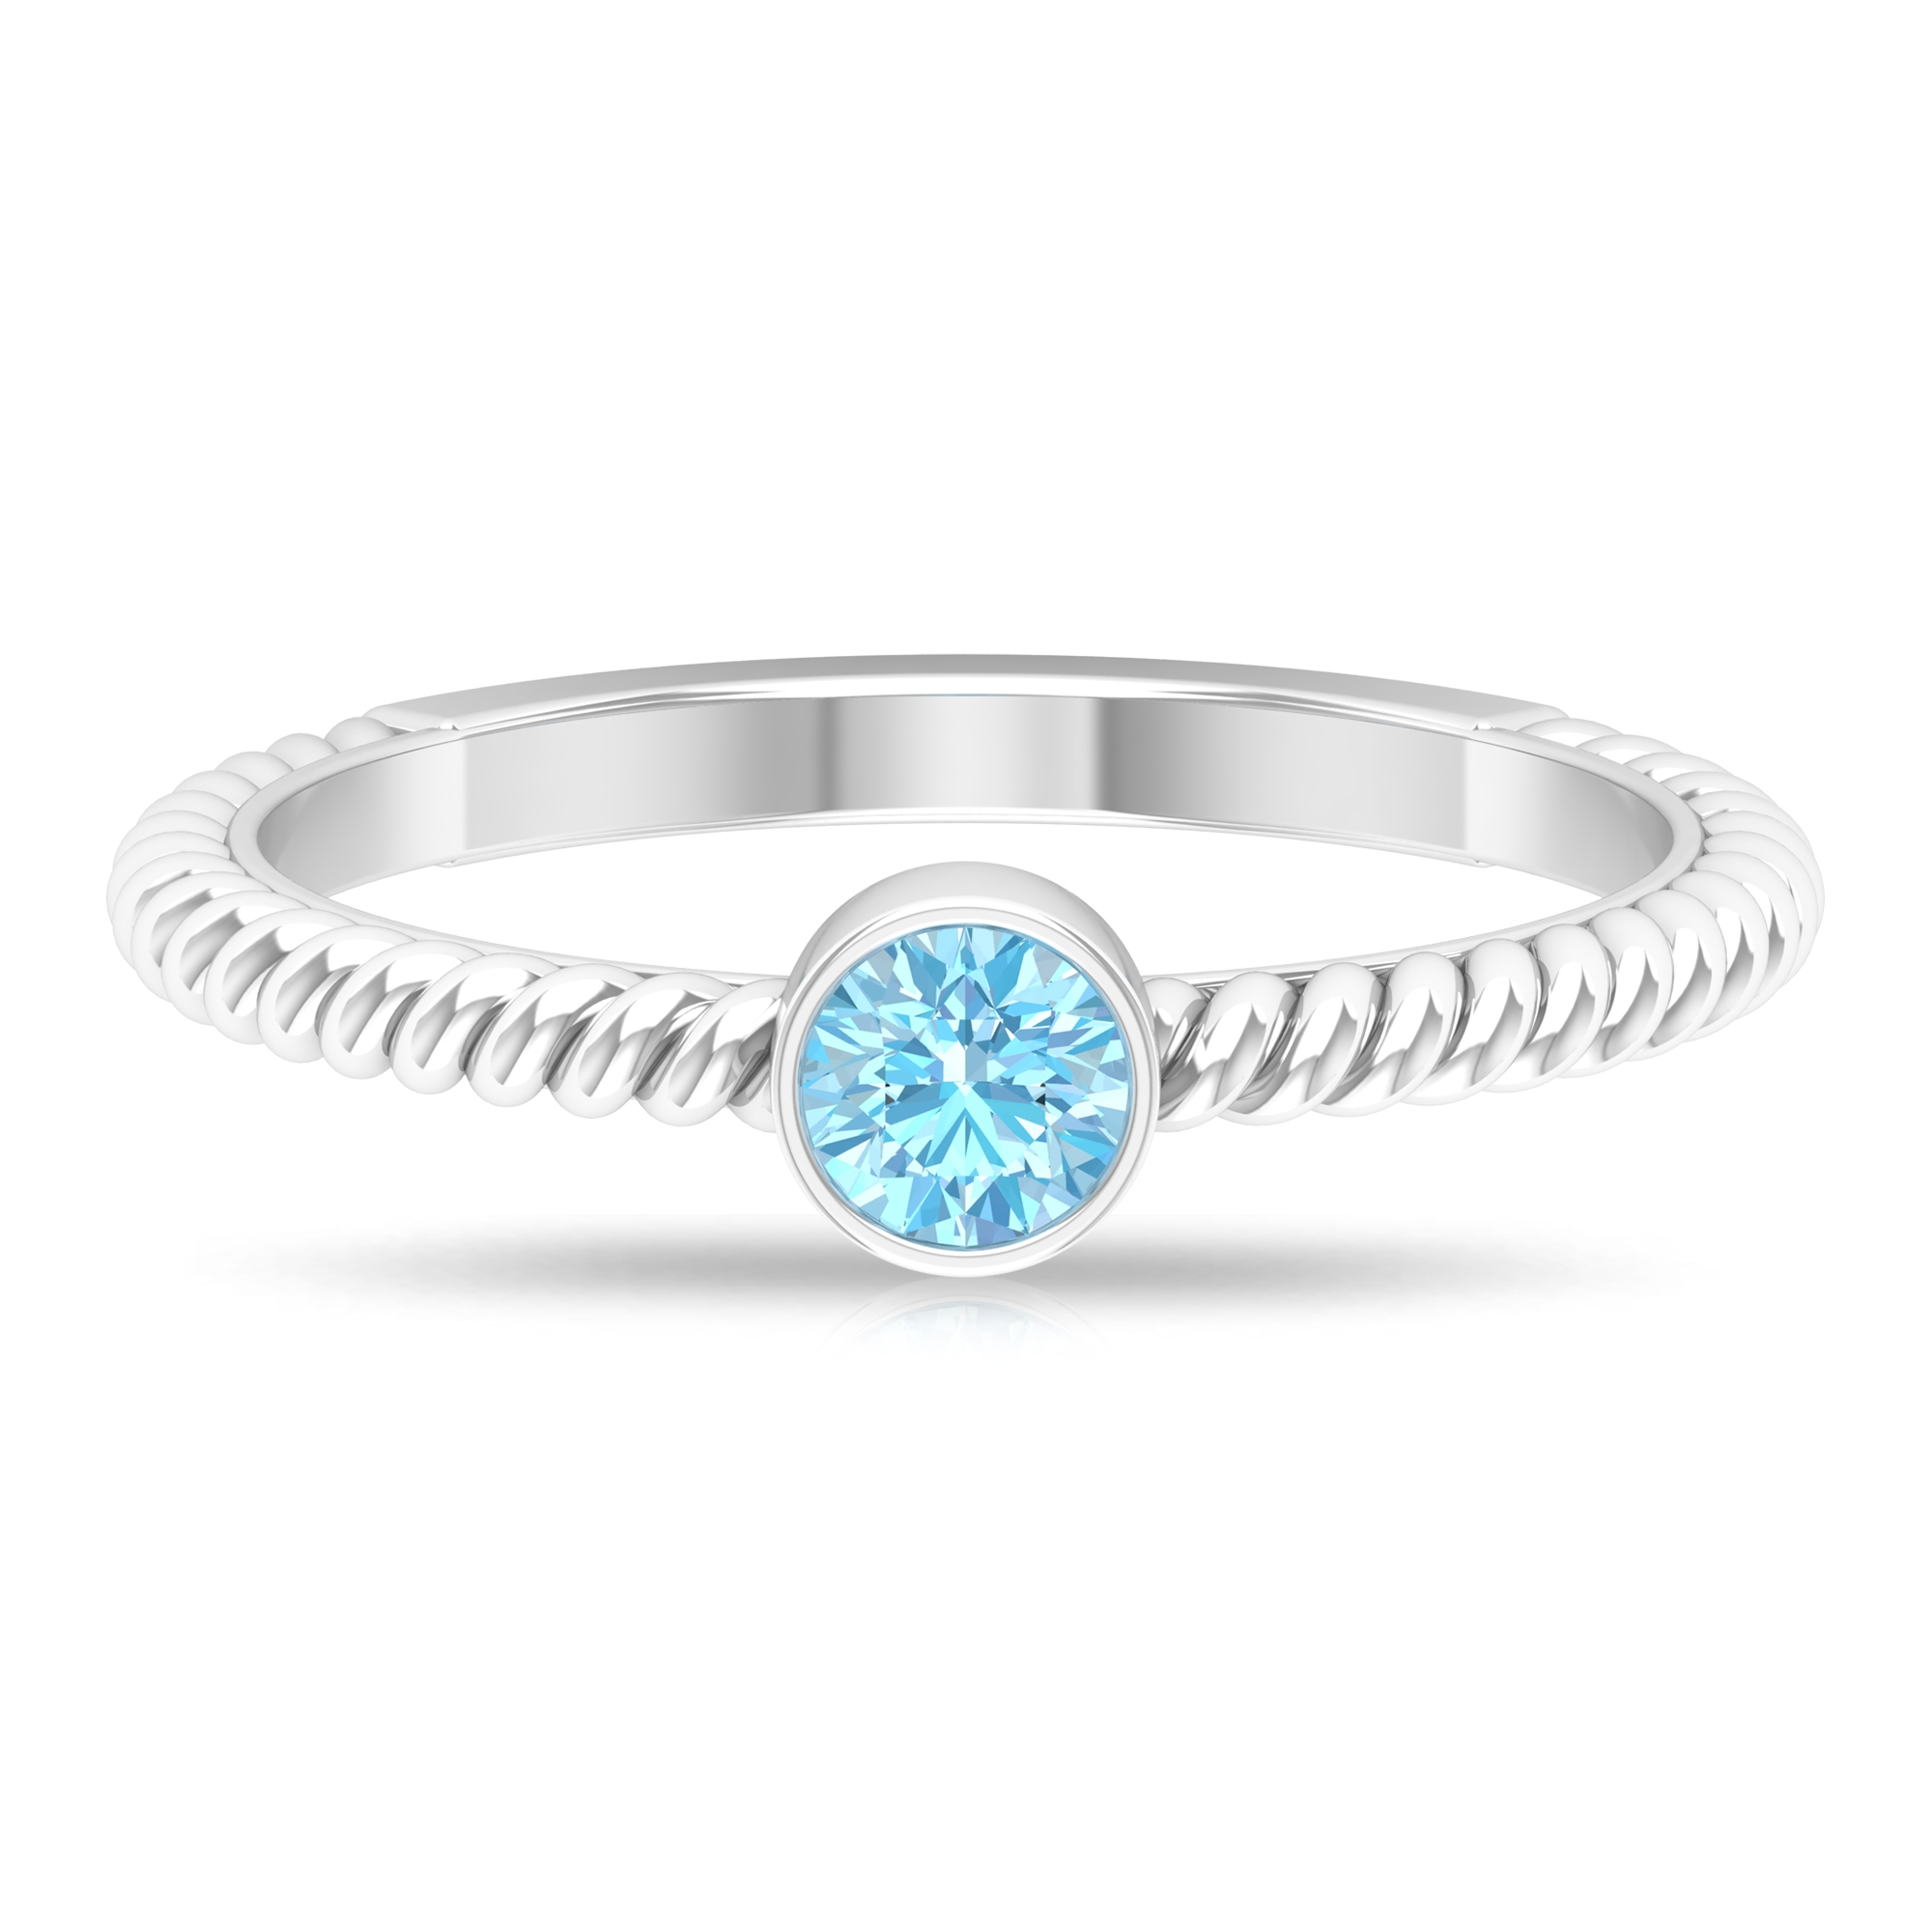 4 MM Round Cut Aquamarine Solitaire Bezel Set Ring with Twisted Rope Shank